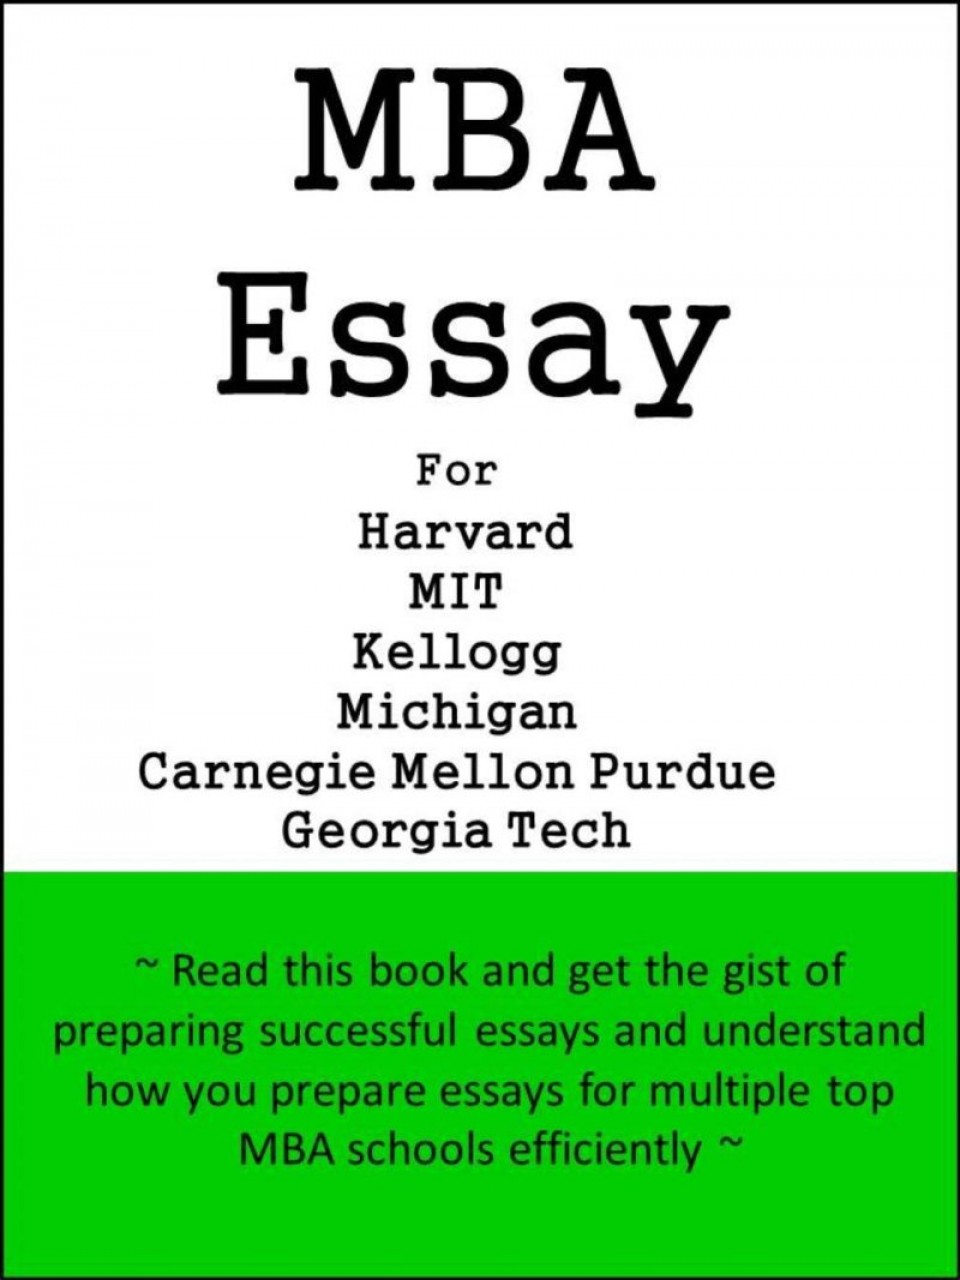 001 Essay Example Carnegie Mellon Kellogg Mba Examples Poemsrom Co For Harvard Mit Michigan Purdue Georgia Tech 205 Striking Sat Requirement Questions 960